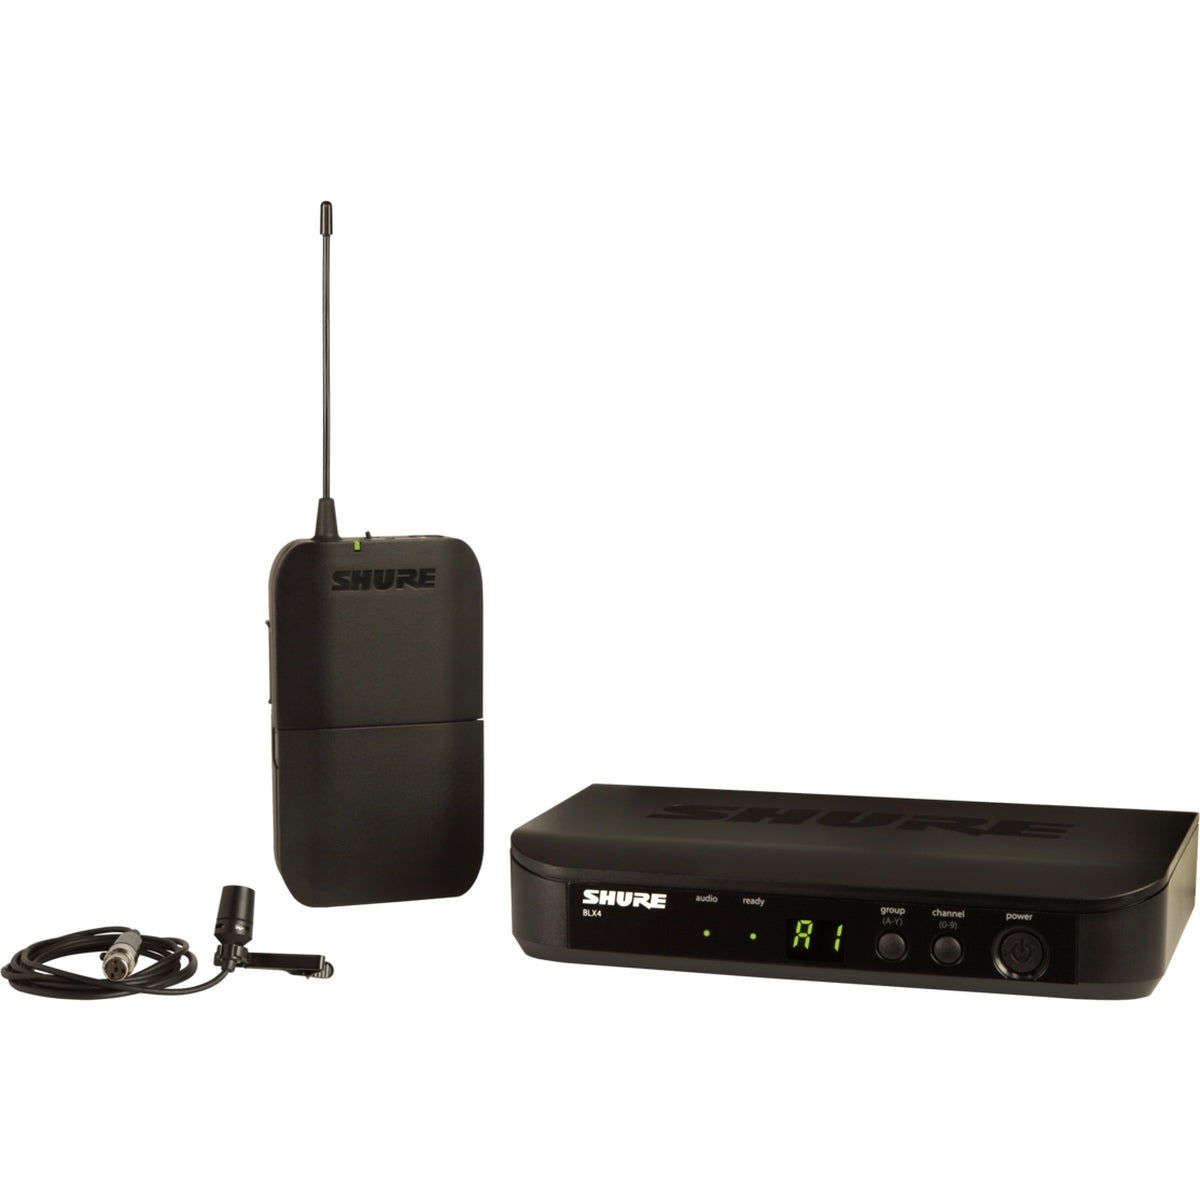 Shure BLX14/CVL Wireless Presenter System with CVL Lavalier Microphone